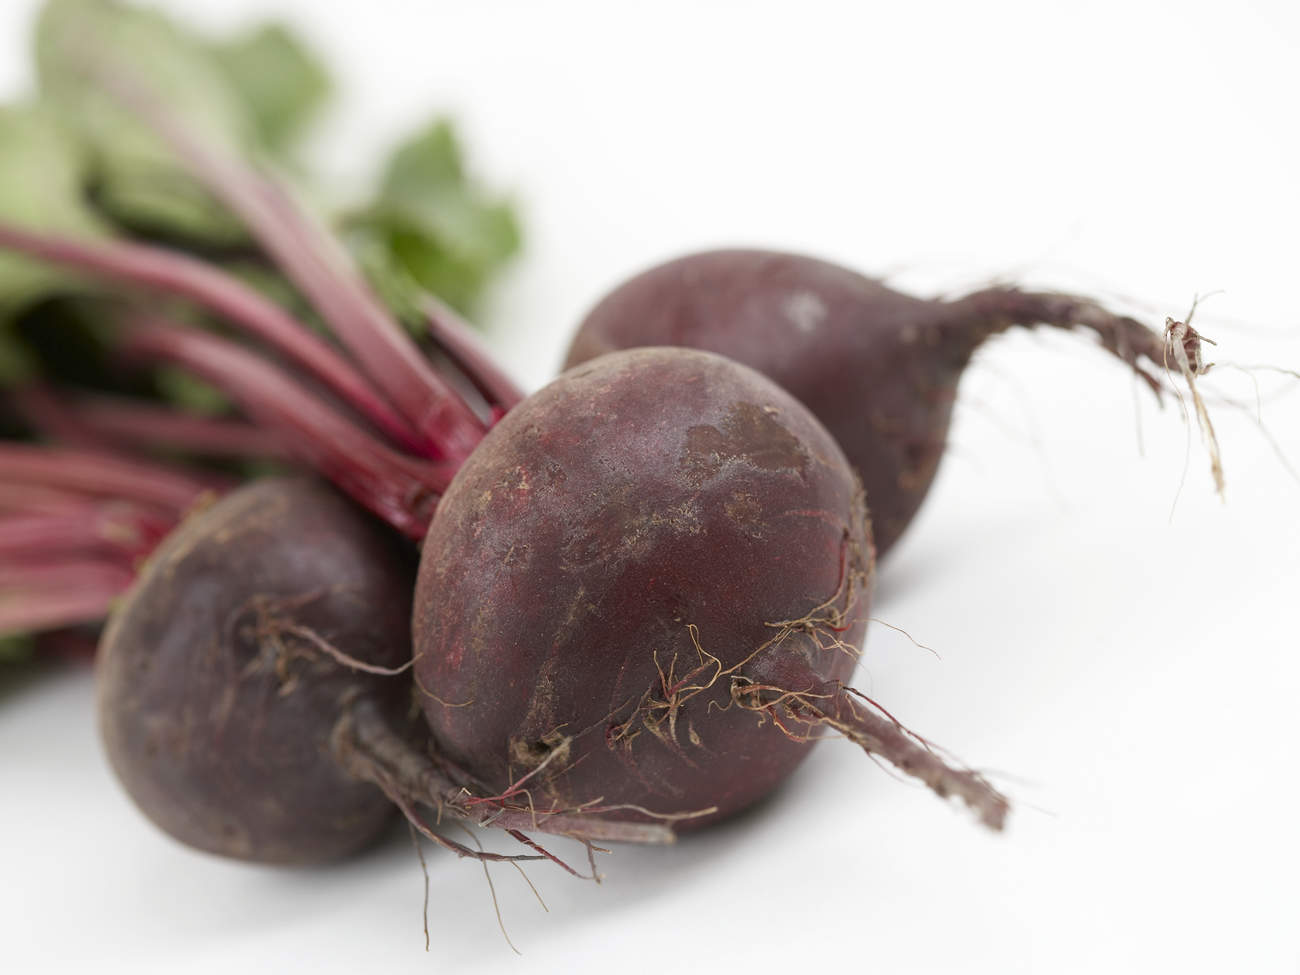 beets-golden-beets